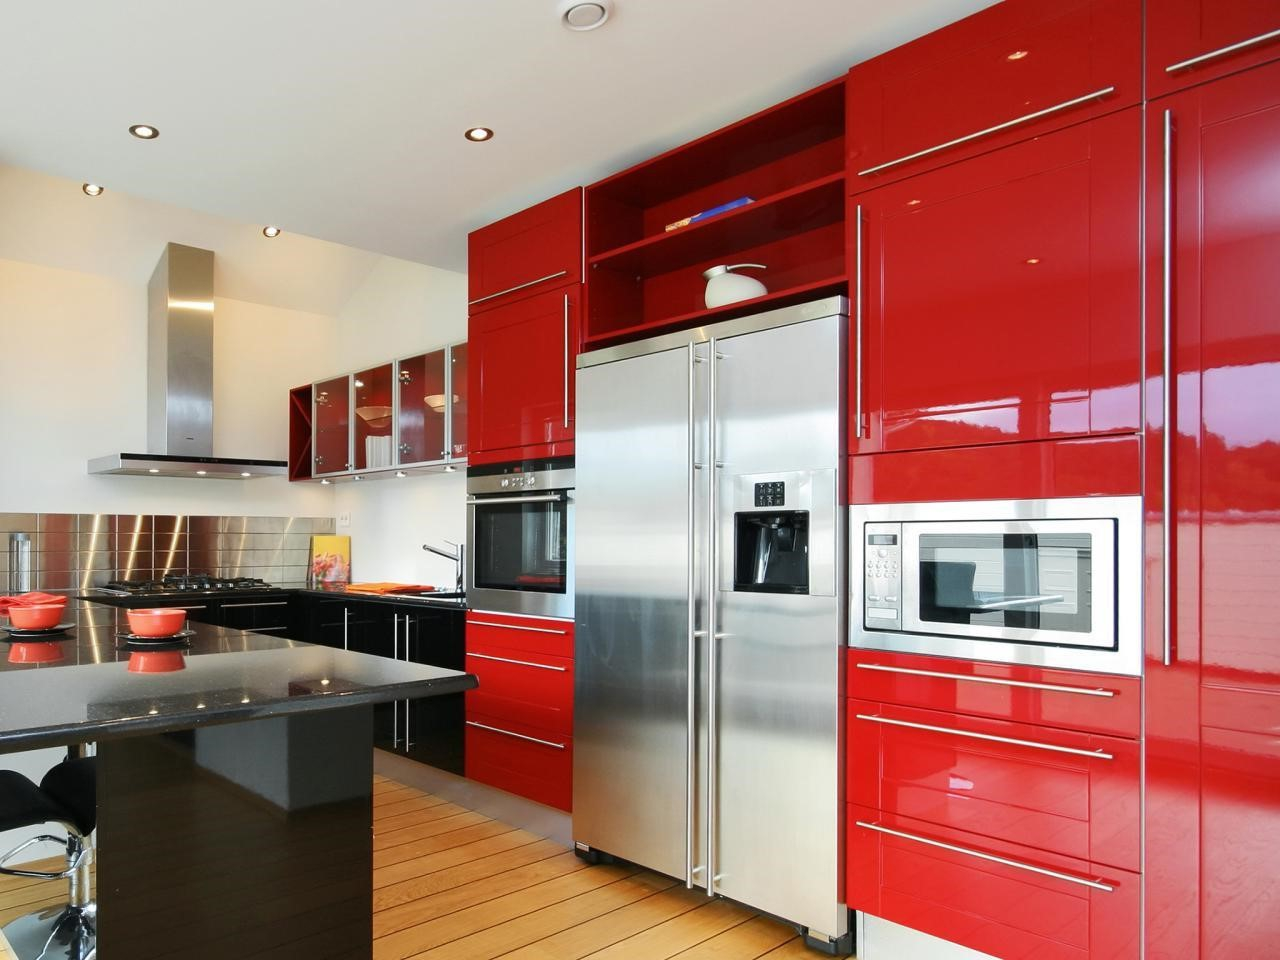 Modern kitchen cabinets with prefab kitchen cabinets with high gloss kitchen cabinets with design your kitchen with base cabinets